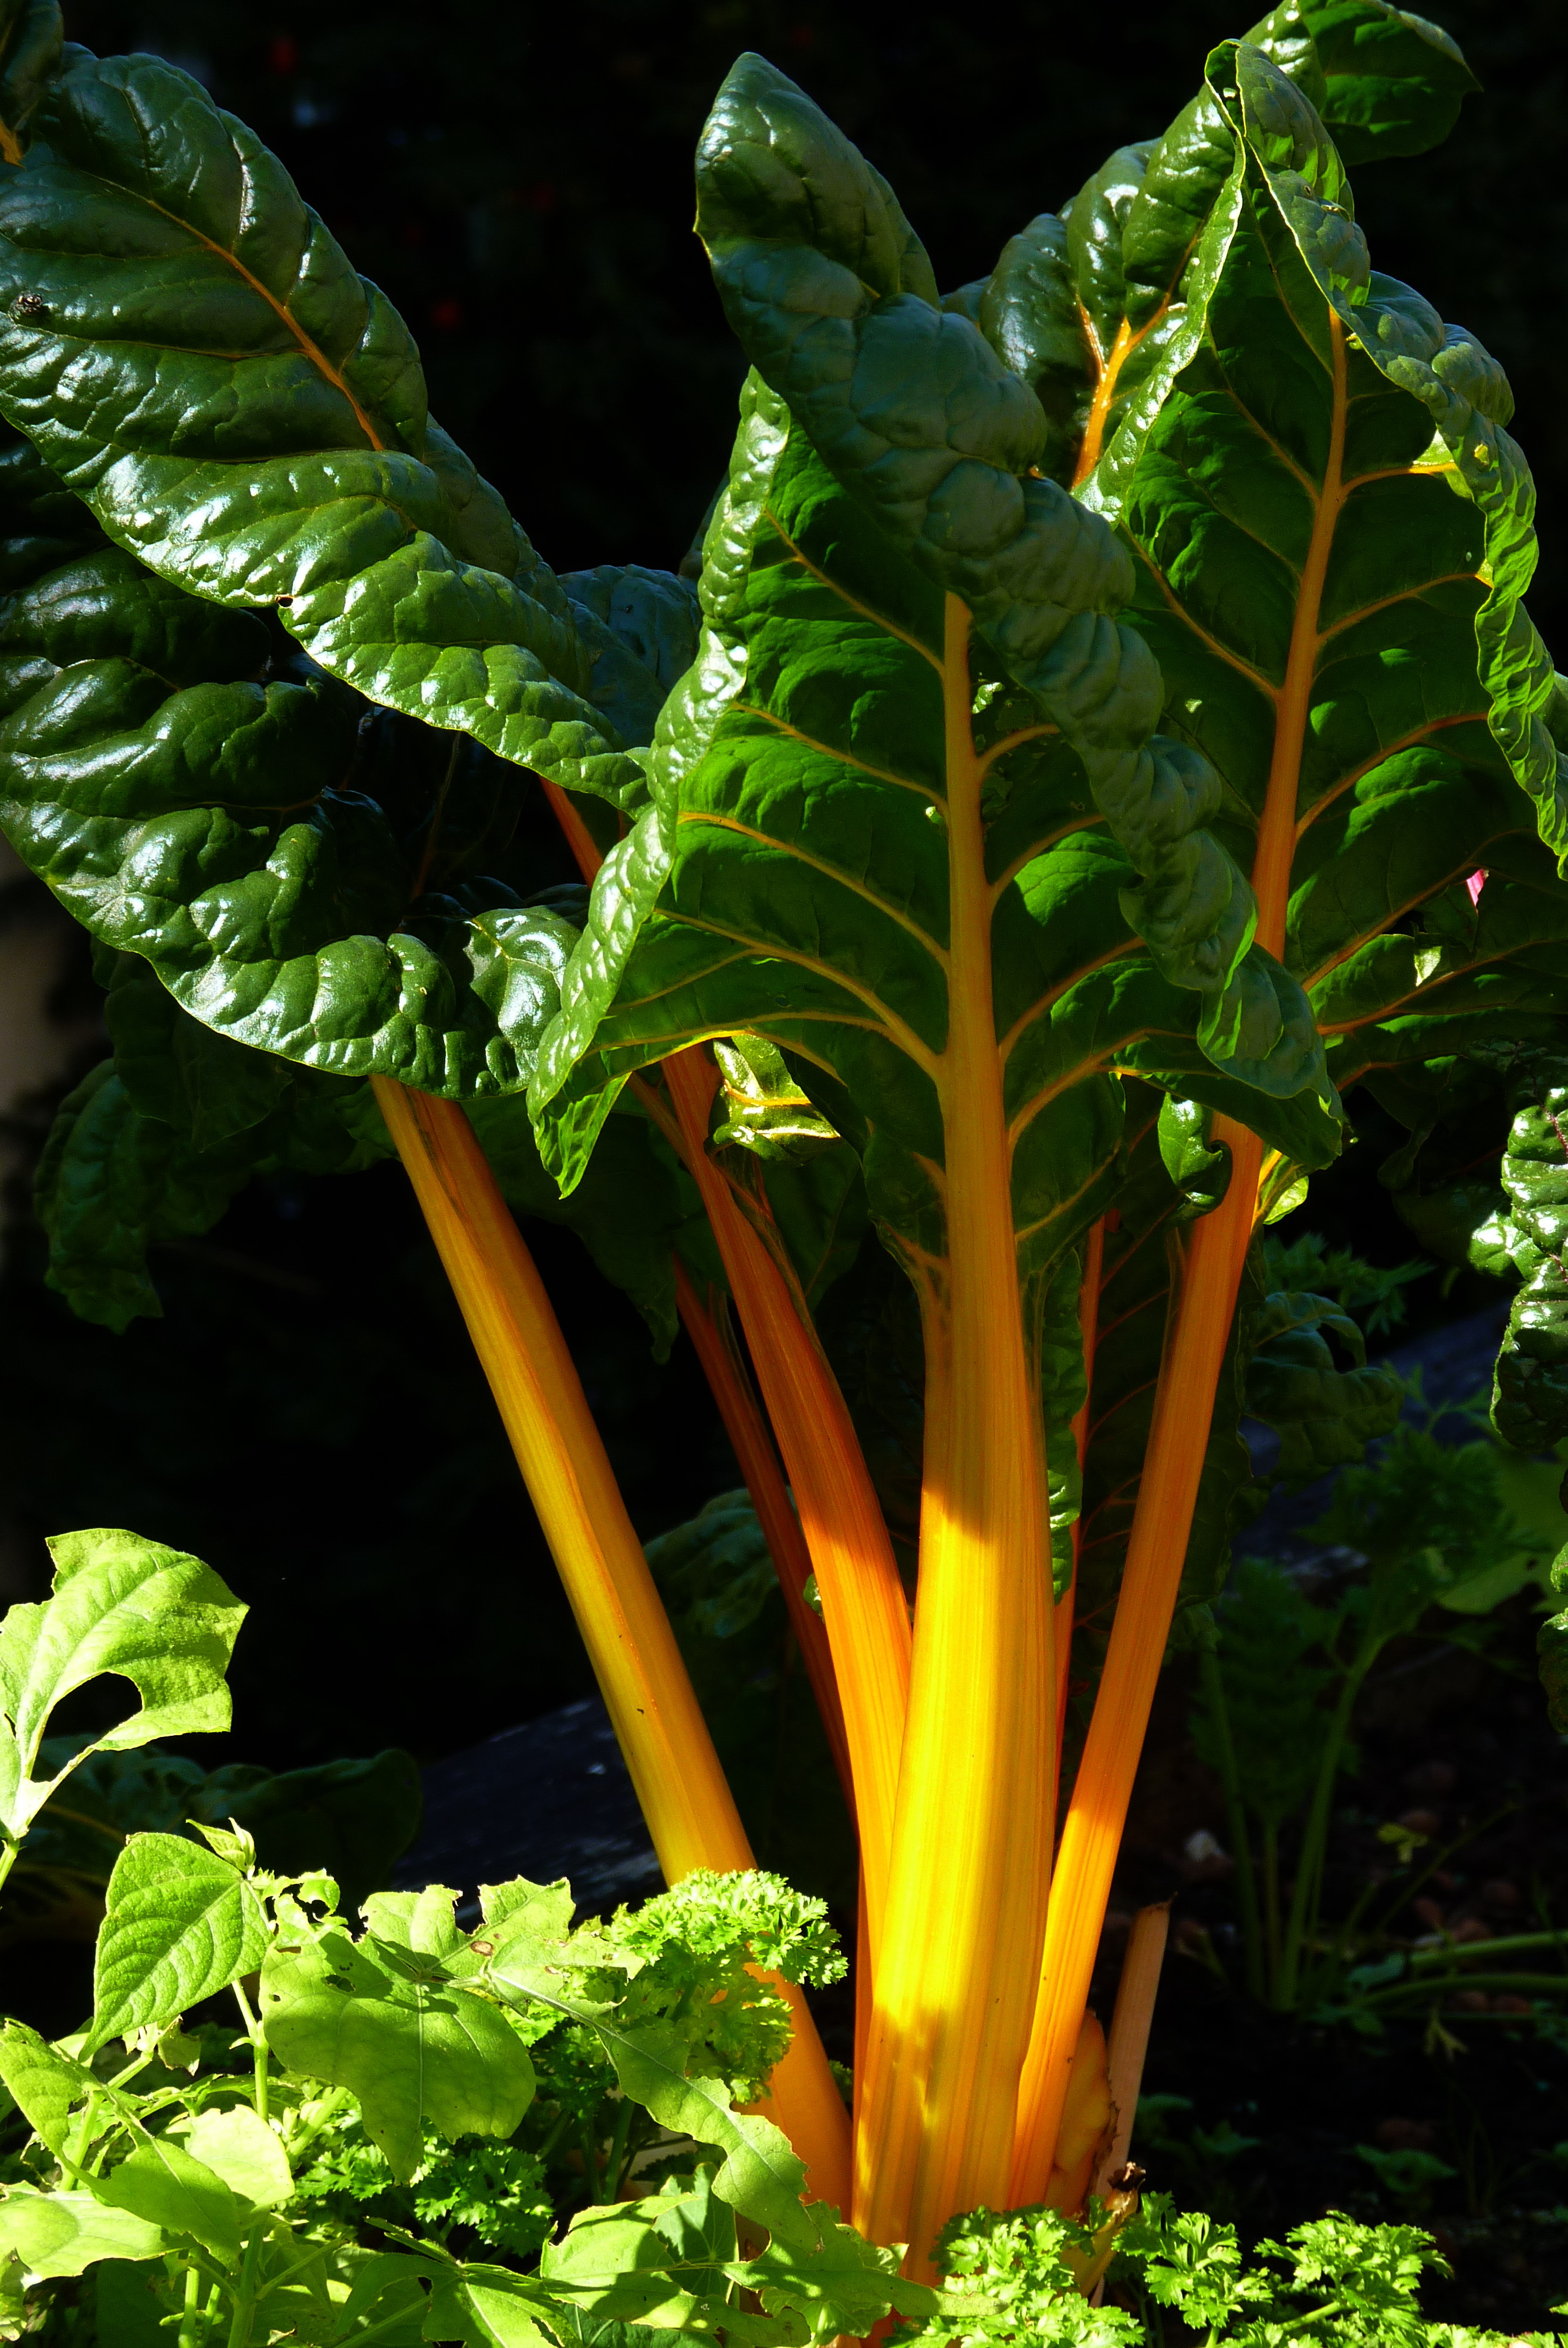 Chard with yellow stalks